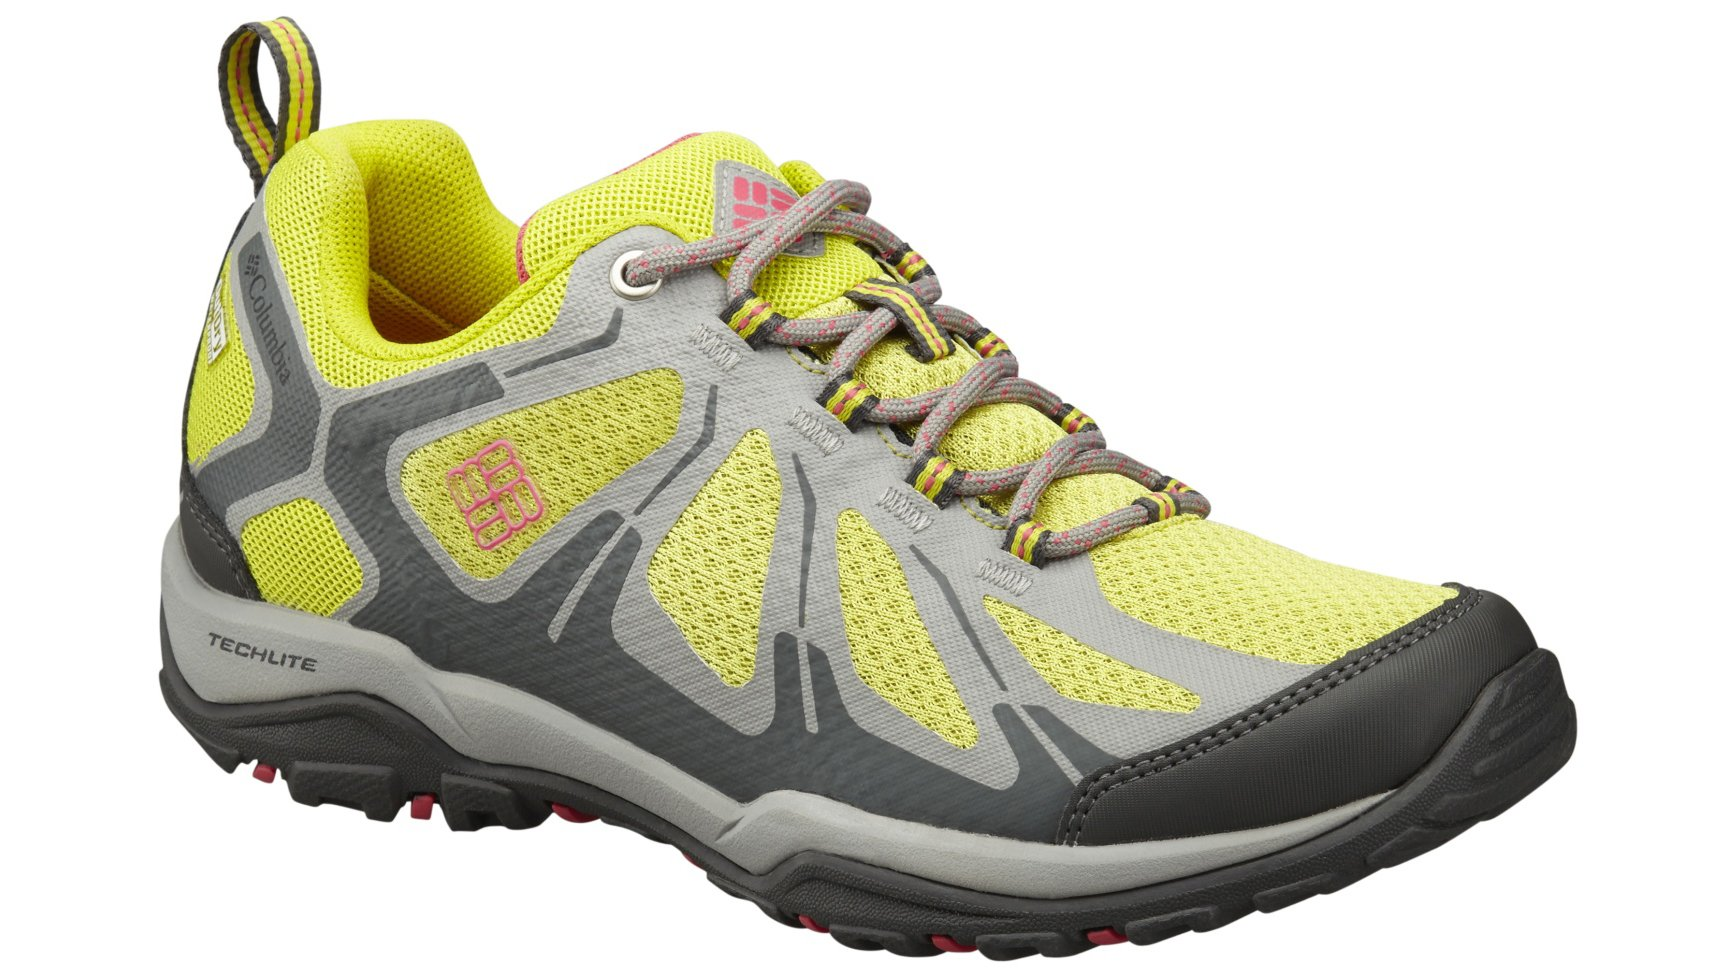 33dff2d80e78 The Peakfreak is the perfect waterproof trainer for summer walking – sturdy  enough for trekking but ...